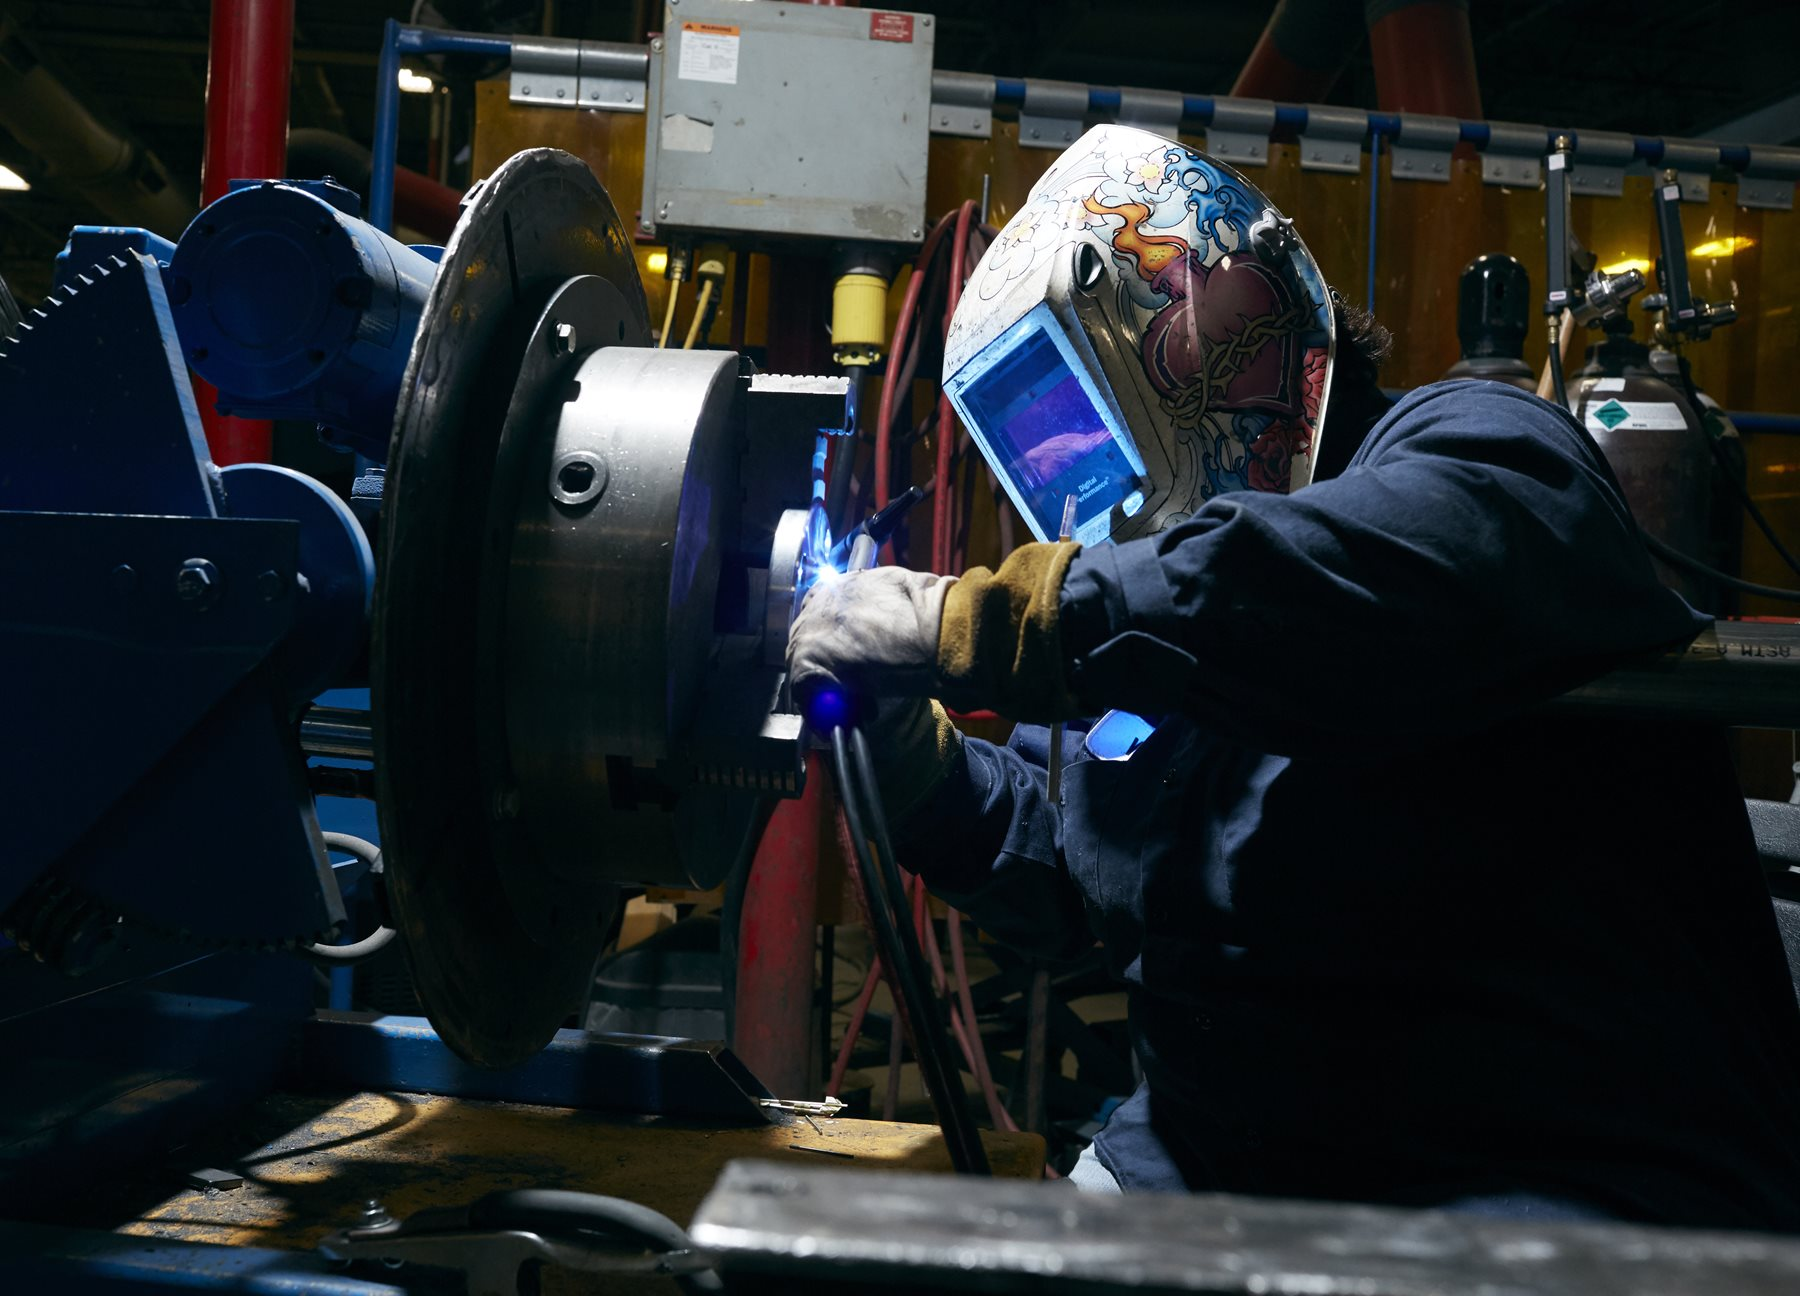 A John Zink Hamworthy Combustion (JZHC) welder works on equipment used to control emissions, much like Morning Star uses.